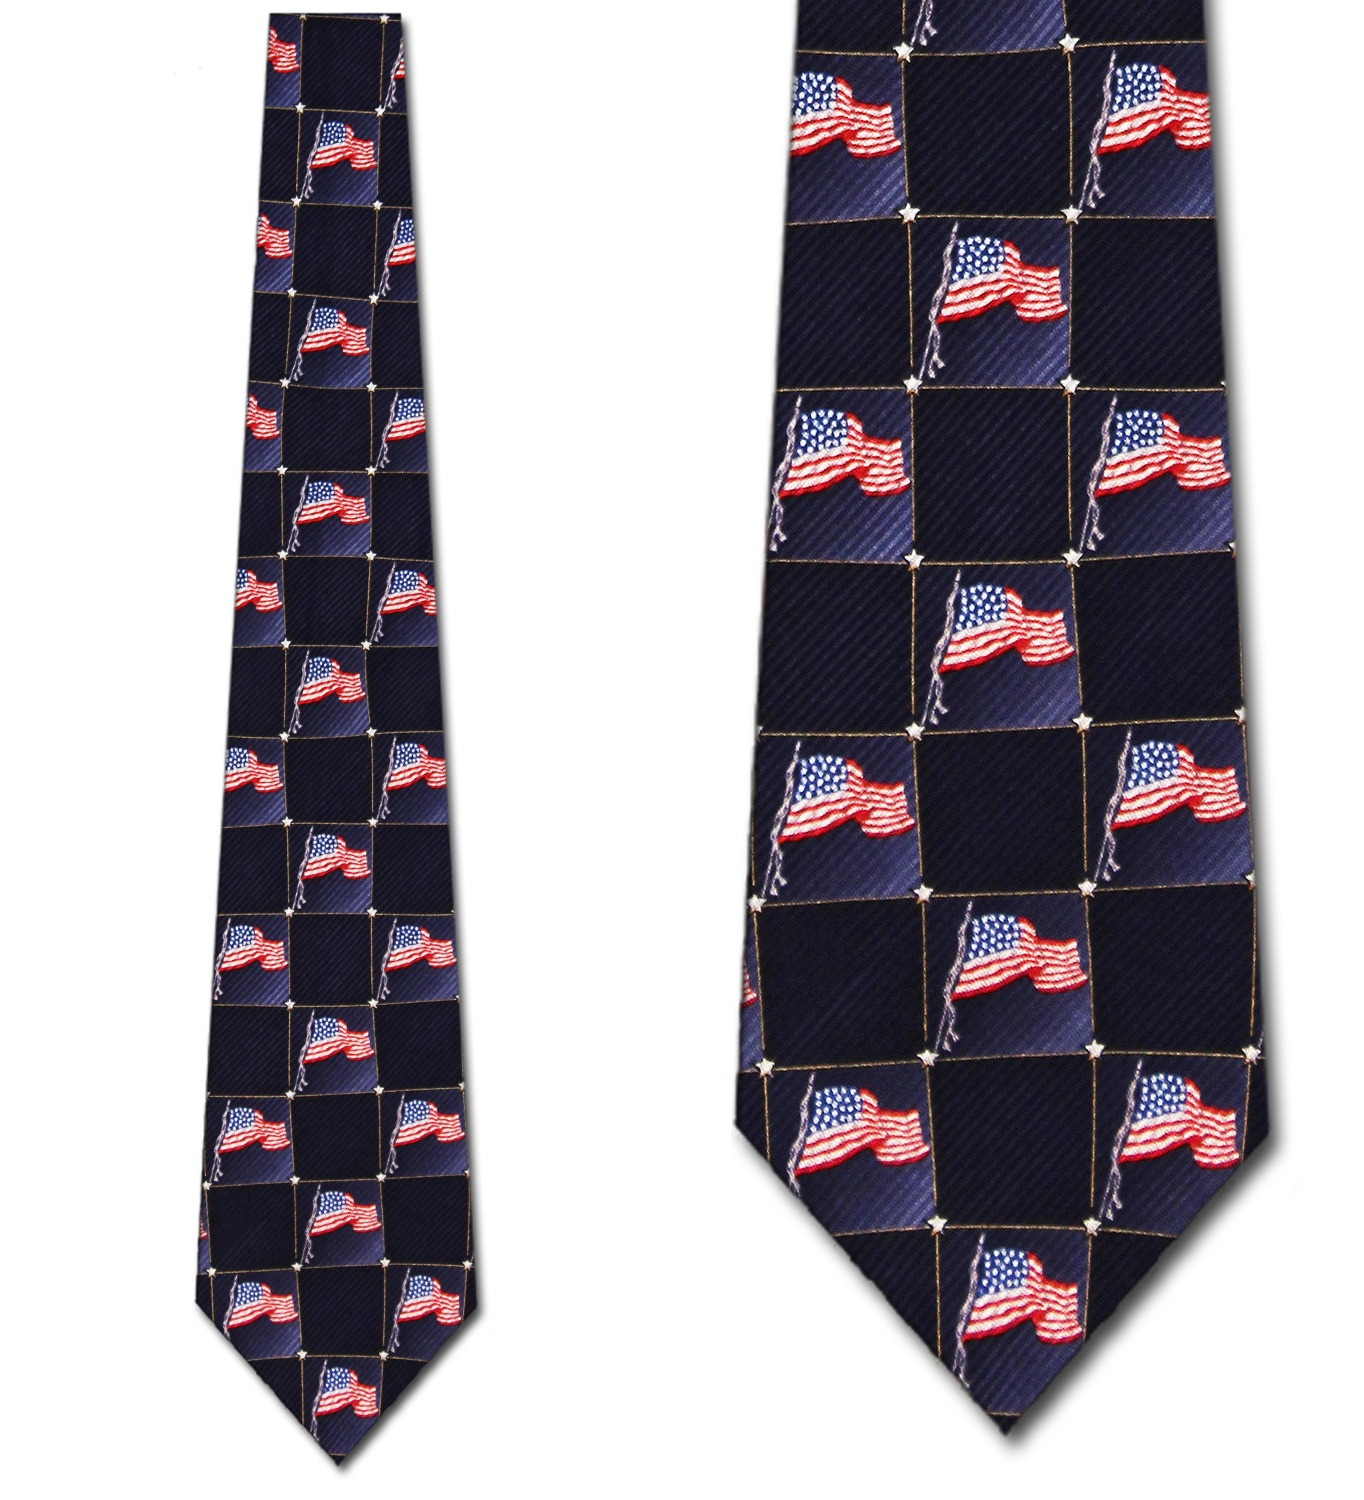 Block Pattern US Flag Necktie Mens Tie by Tieguys